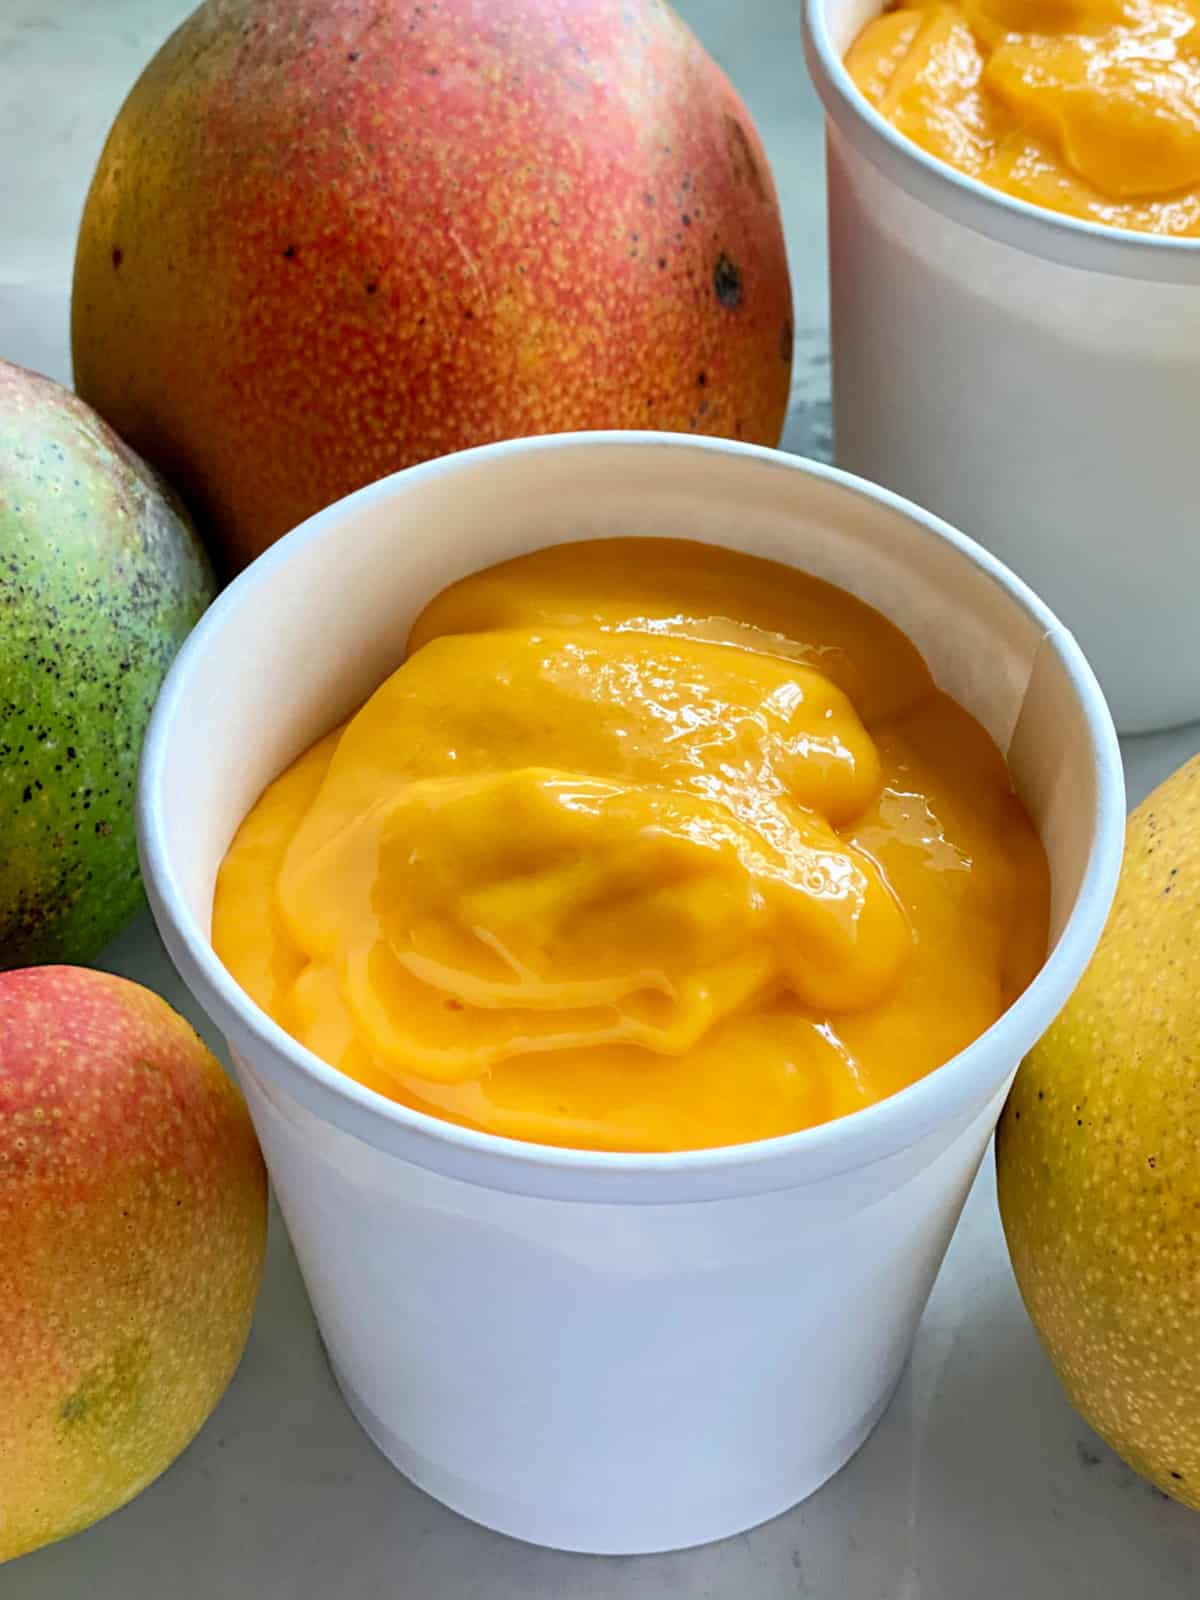 White carton filled with Mango Frozen Yogurt with additional fresh mangoes around the container.